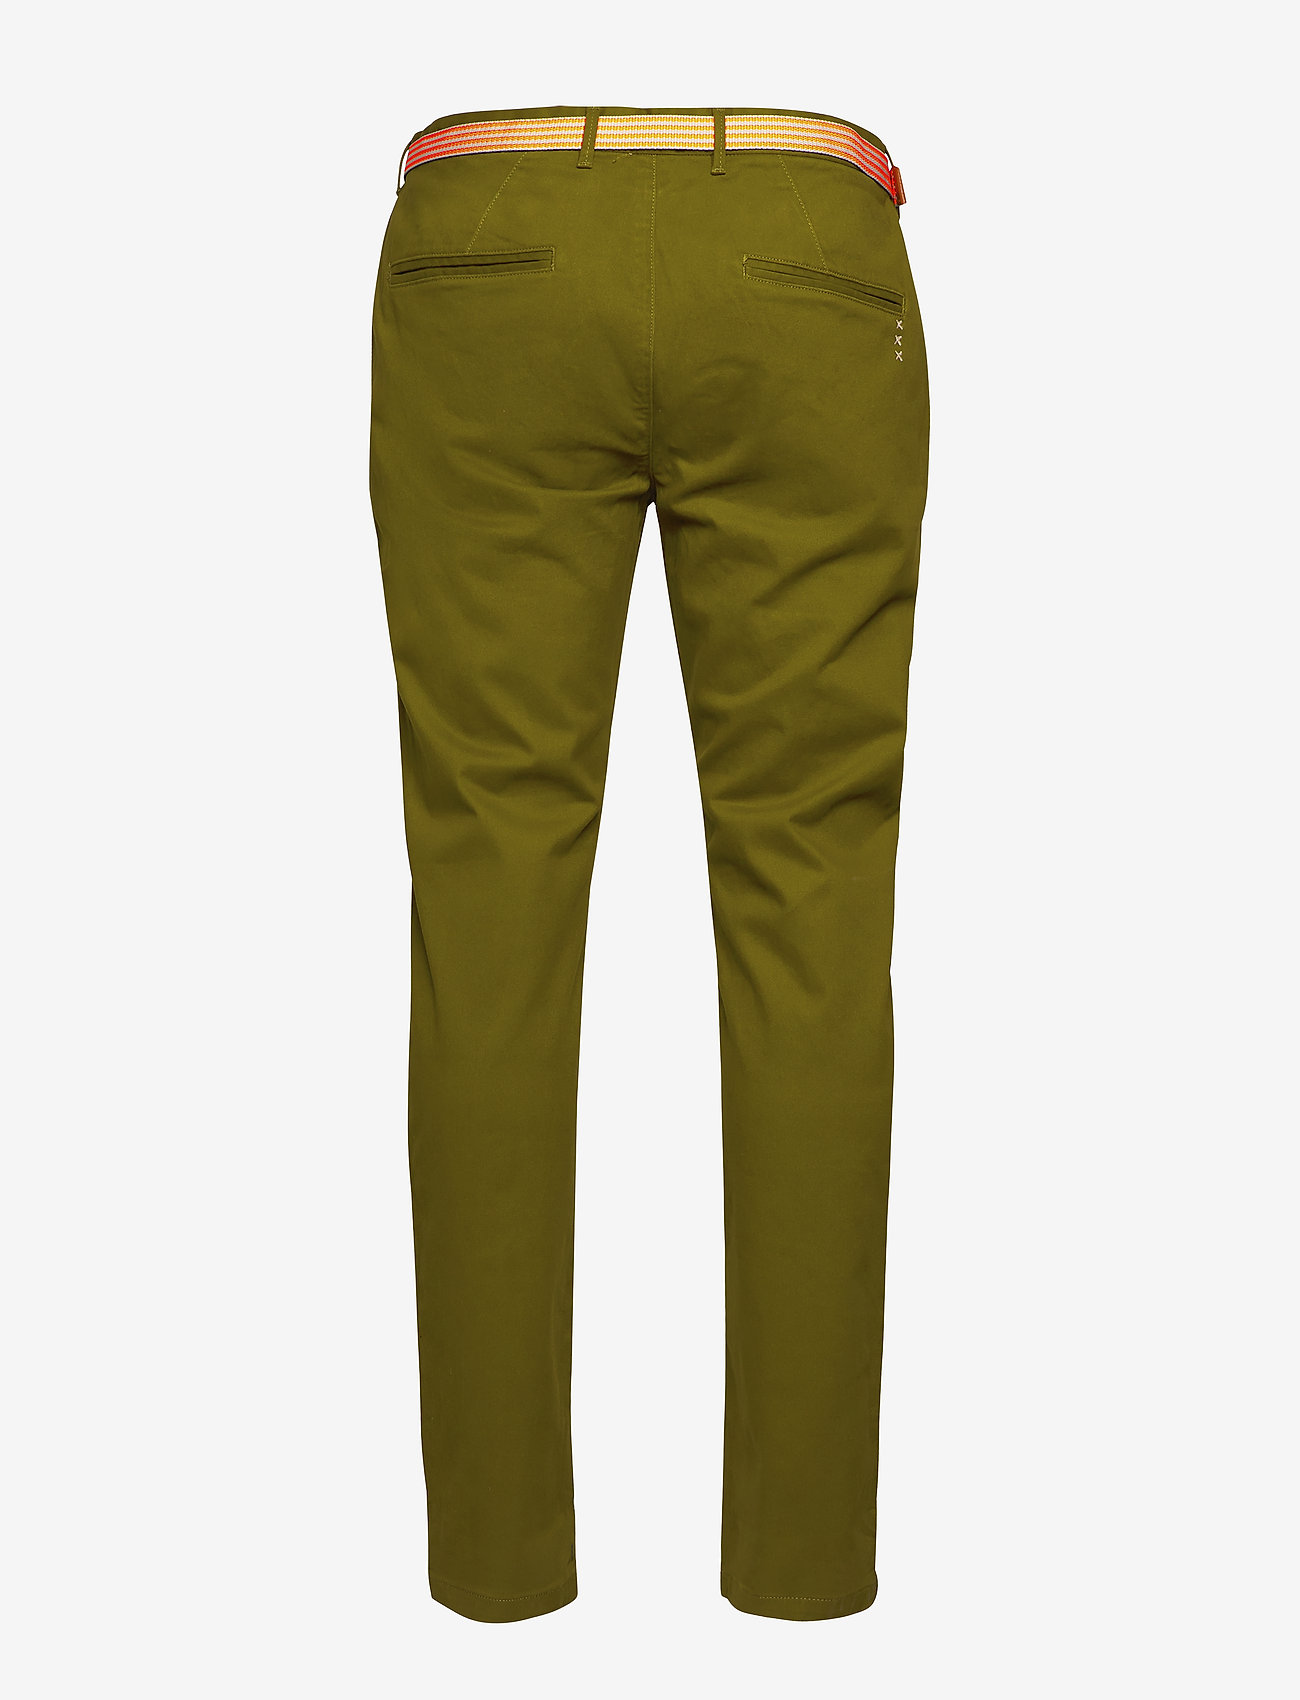 Scotch & Soda - Ams Blauw stretch Stuart chino with belt - chinos - military green - 1